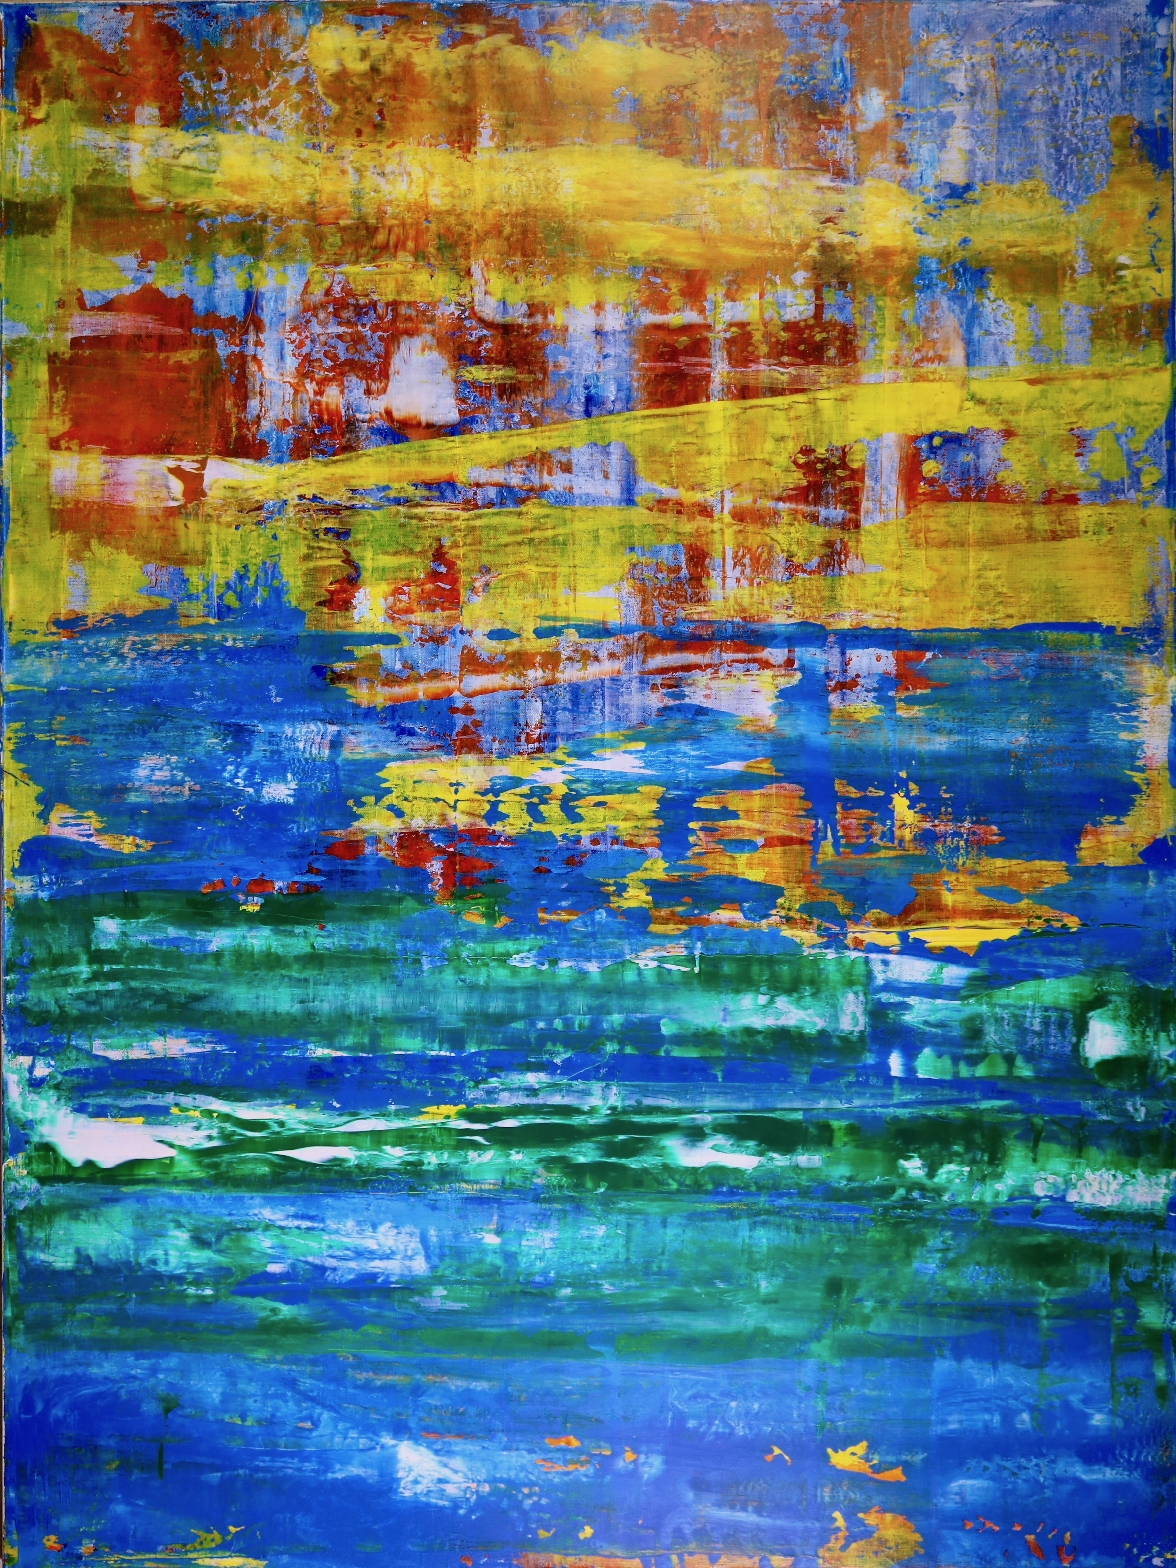 SOLD - Dimensional Terrain - Visible Contrast by artist Nestor Toro